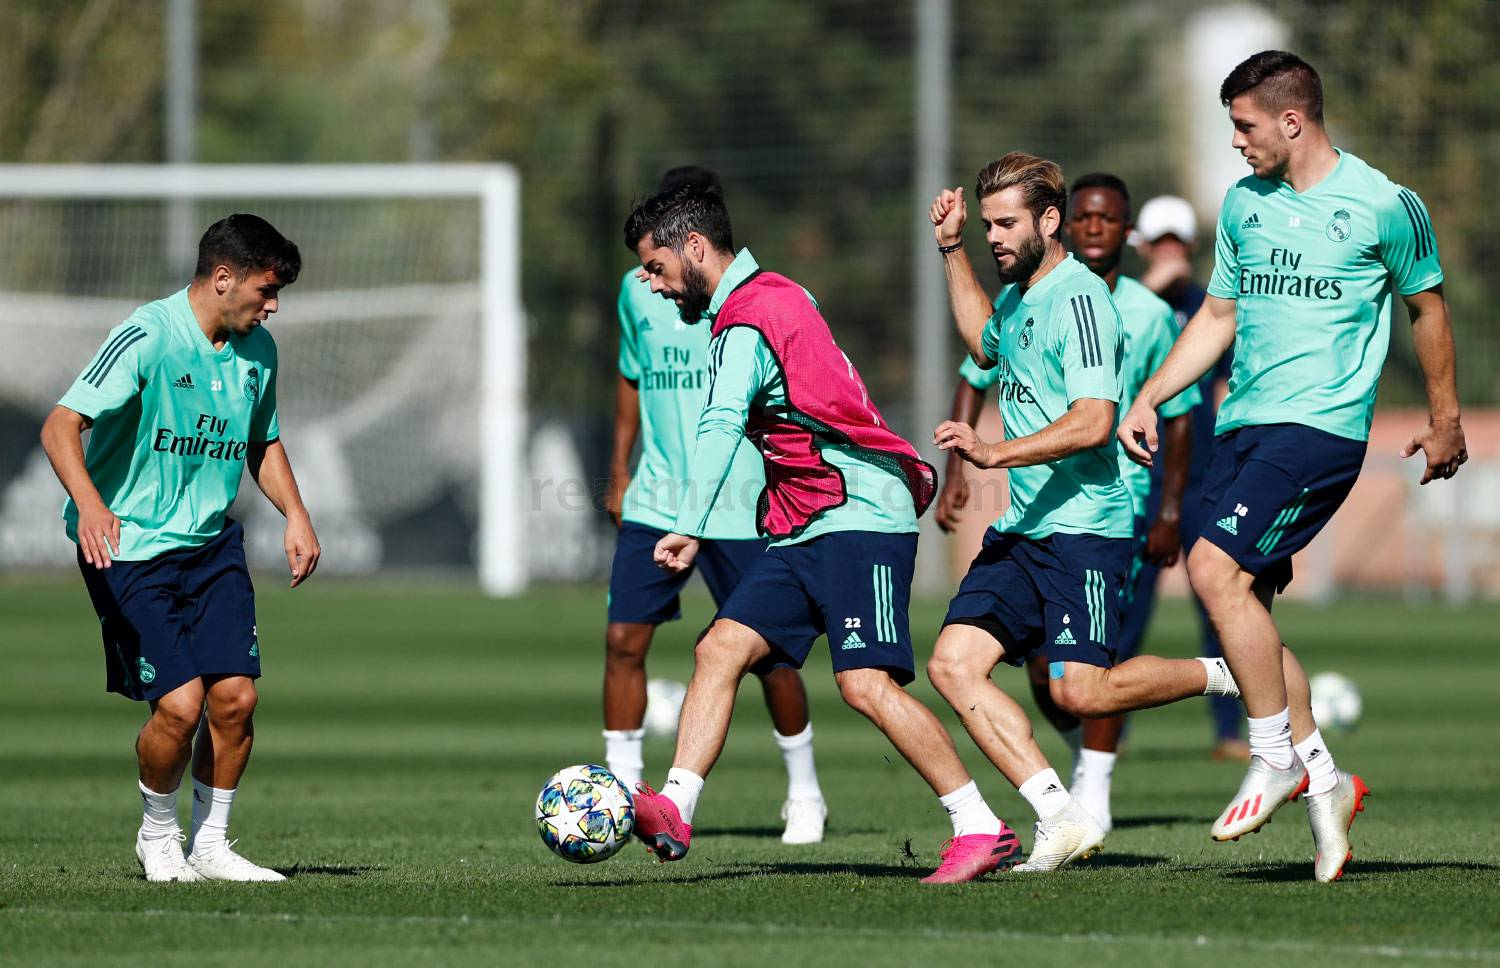 Real Madrid - Entrenamiento del Real Madrid  - 30-09-2019